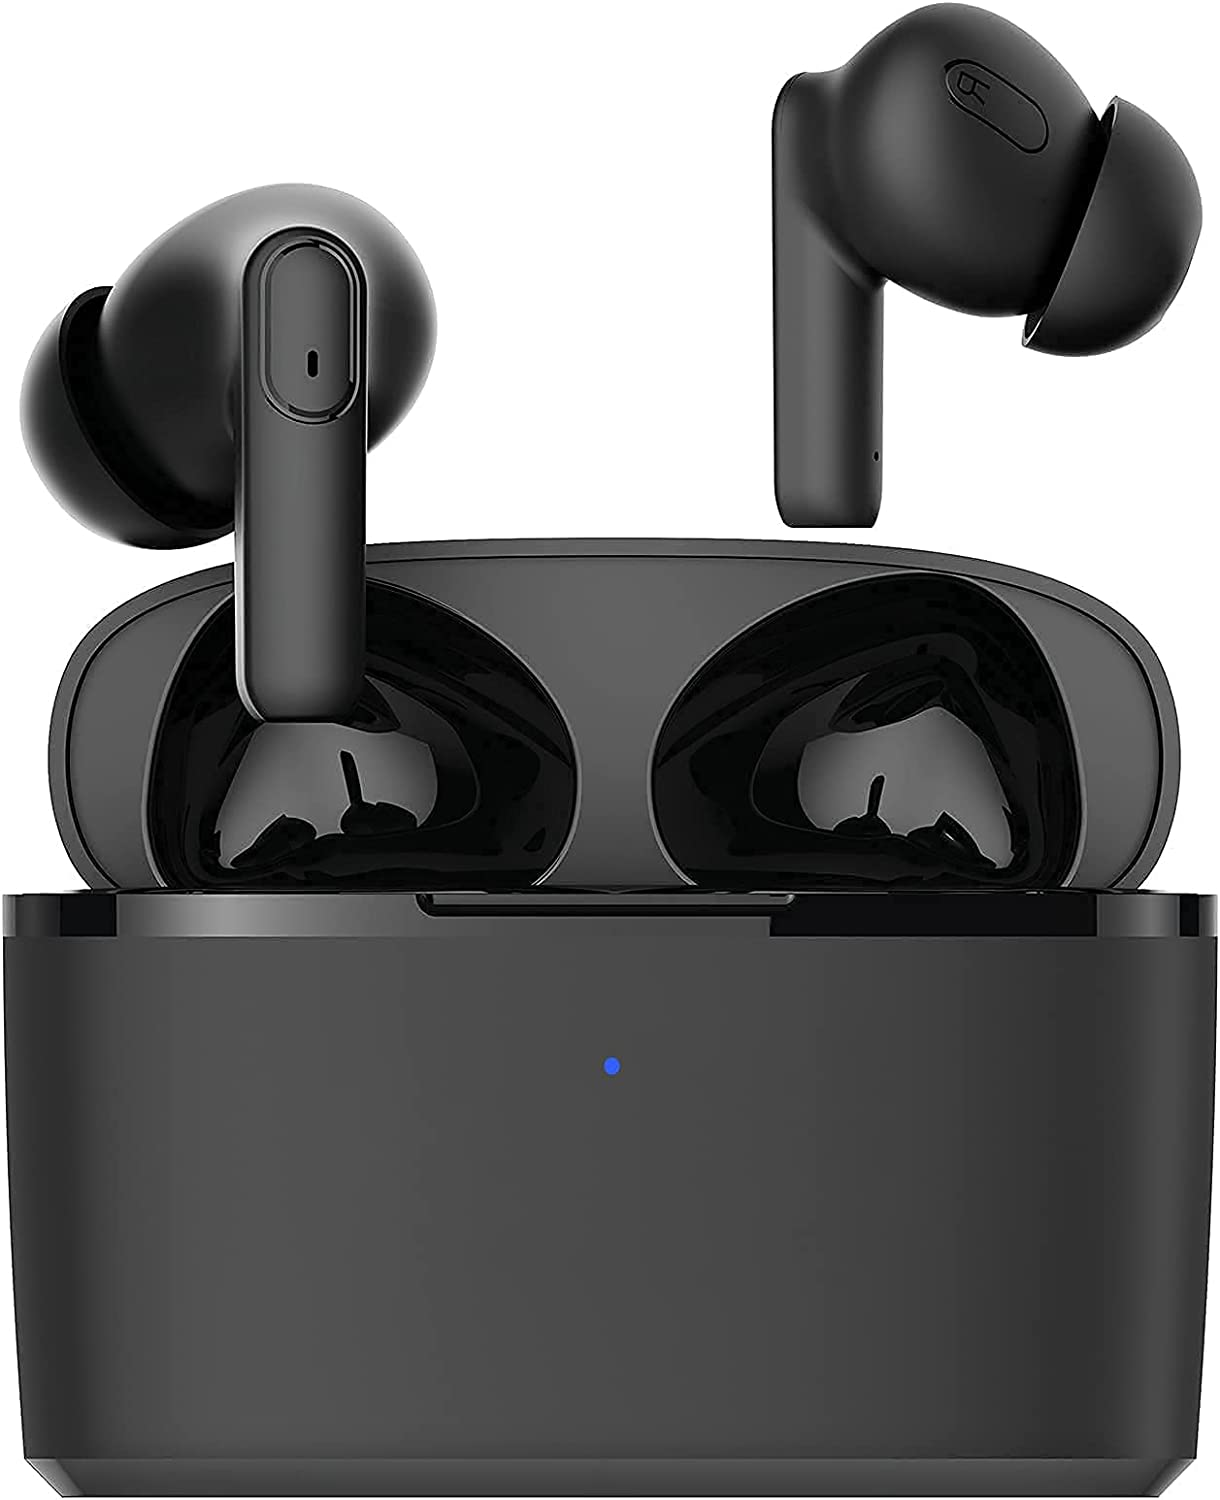 KOSETON K9 True Wireless Earbuds - Bluetooth 5.1 Headphones with Charging Case, Touch Controls, Built-in 2 Mic Earphones, Deep Bass, Sport and Waterproof Earbuds with 30 Hour Battery